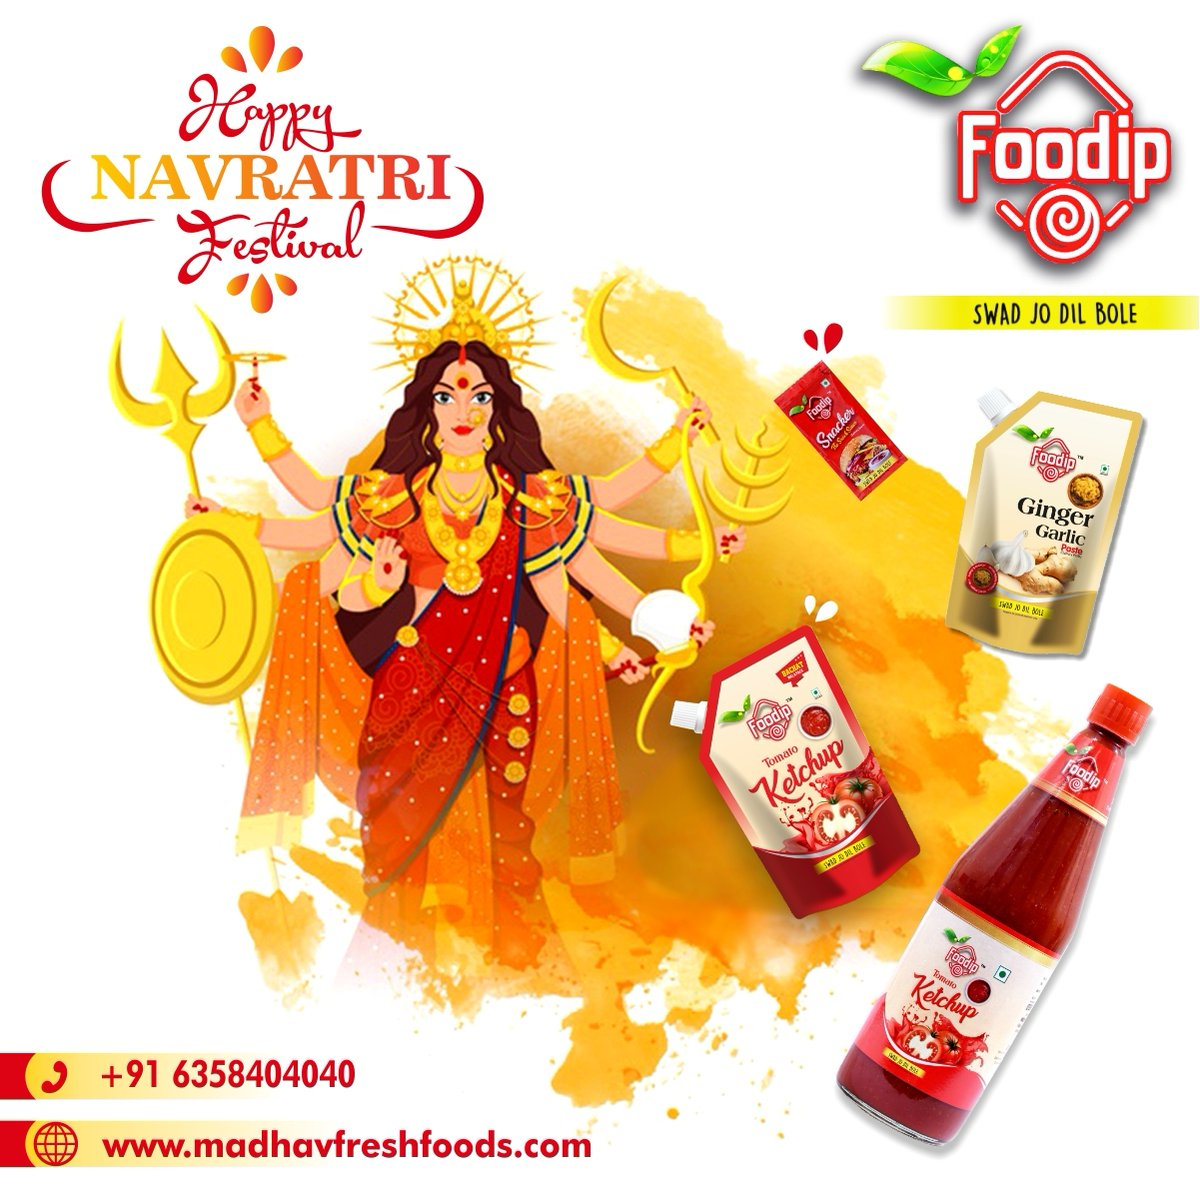 Happy Navratri to everyone. 🙏 We wish Mata Rani will bless everyone with good health.  . Contact us to know more: +91-63584-04040 Mail us : info@madhavfreshfoods.com . #worldpostday #2k20 #food #mayonnaise #sauce #pickles